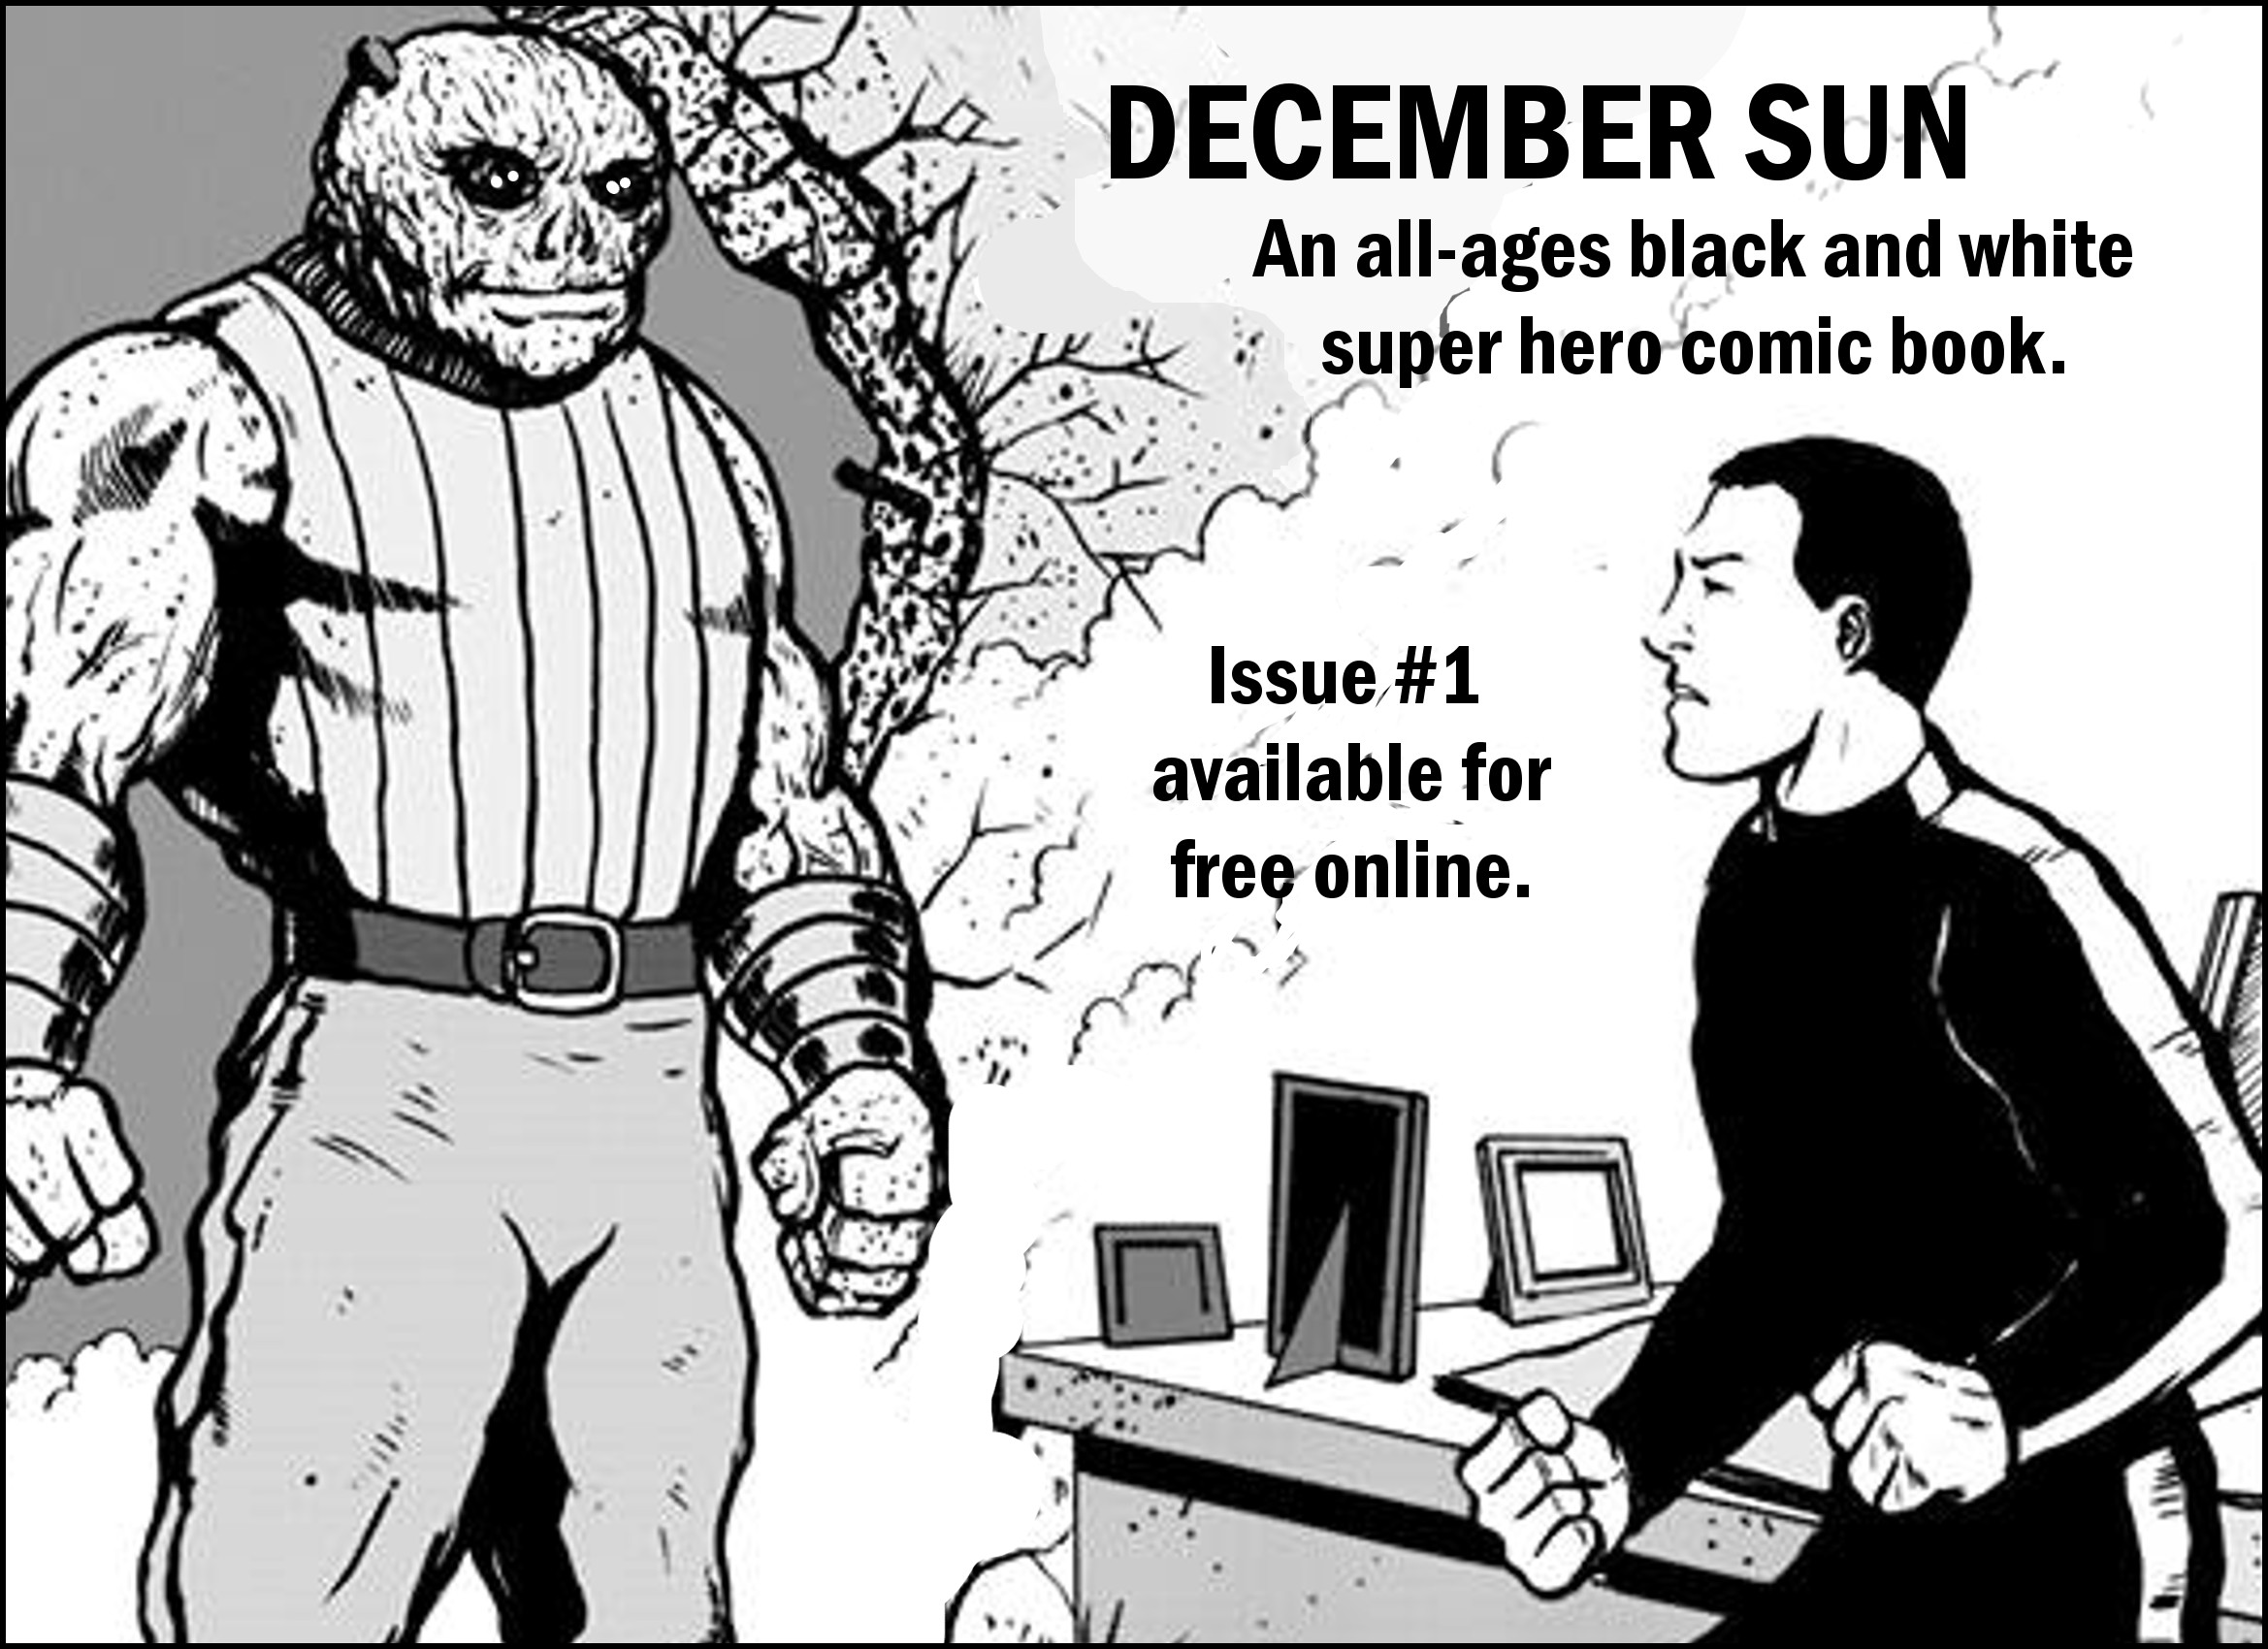 december Sun was a comic book that I created over 20 years aog. It was a completed comic book that I pencilled, inked and wrote, with the intention of submitting it to places like Marvel, DC, Image, etc, which I did. I never got a gig, but I did have fun making the comic